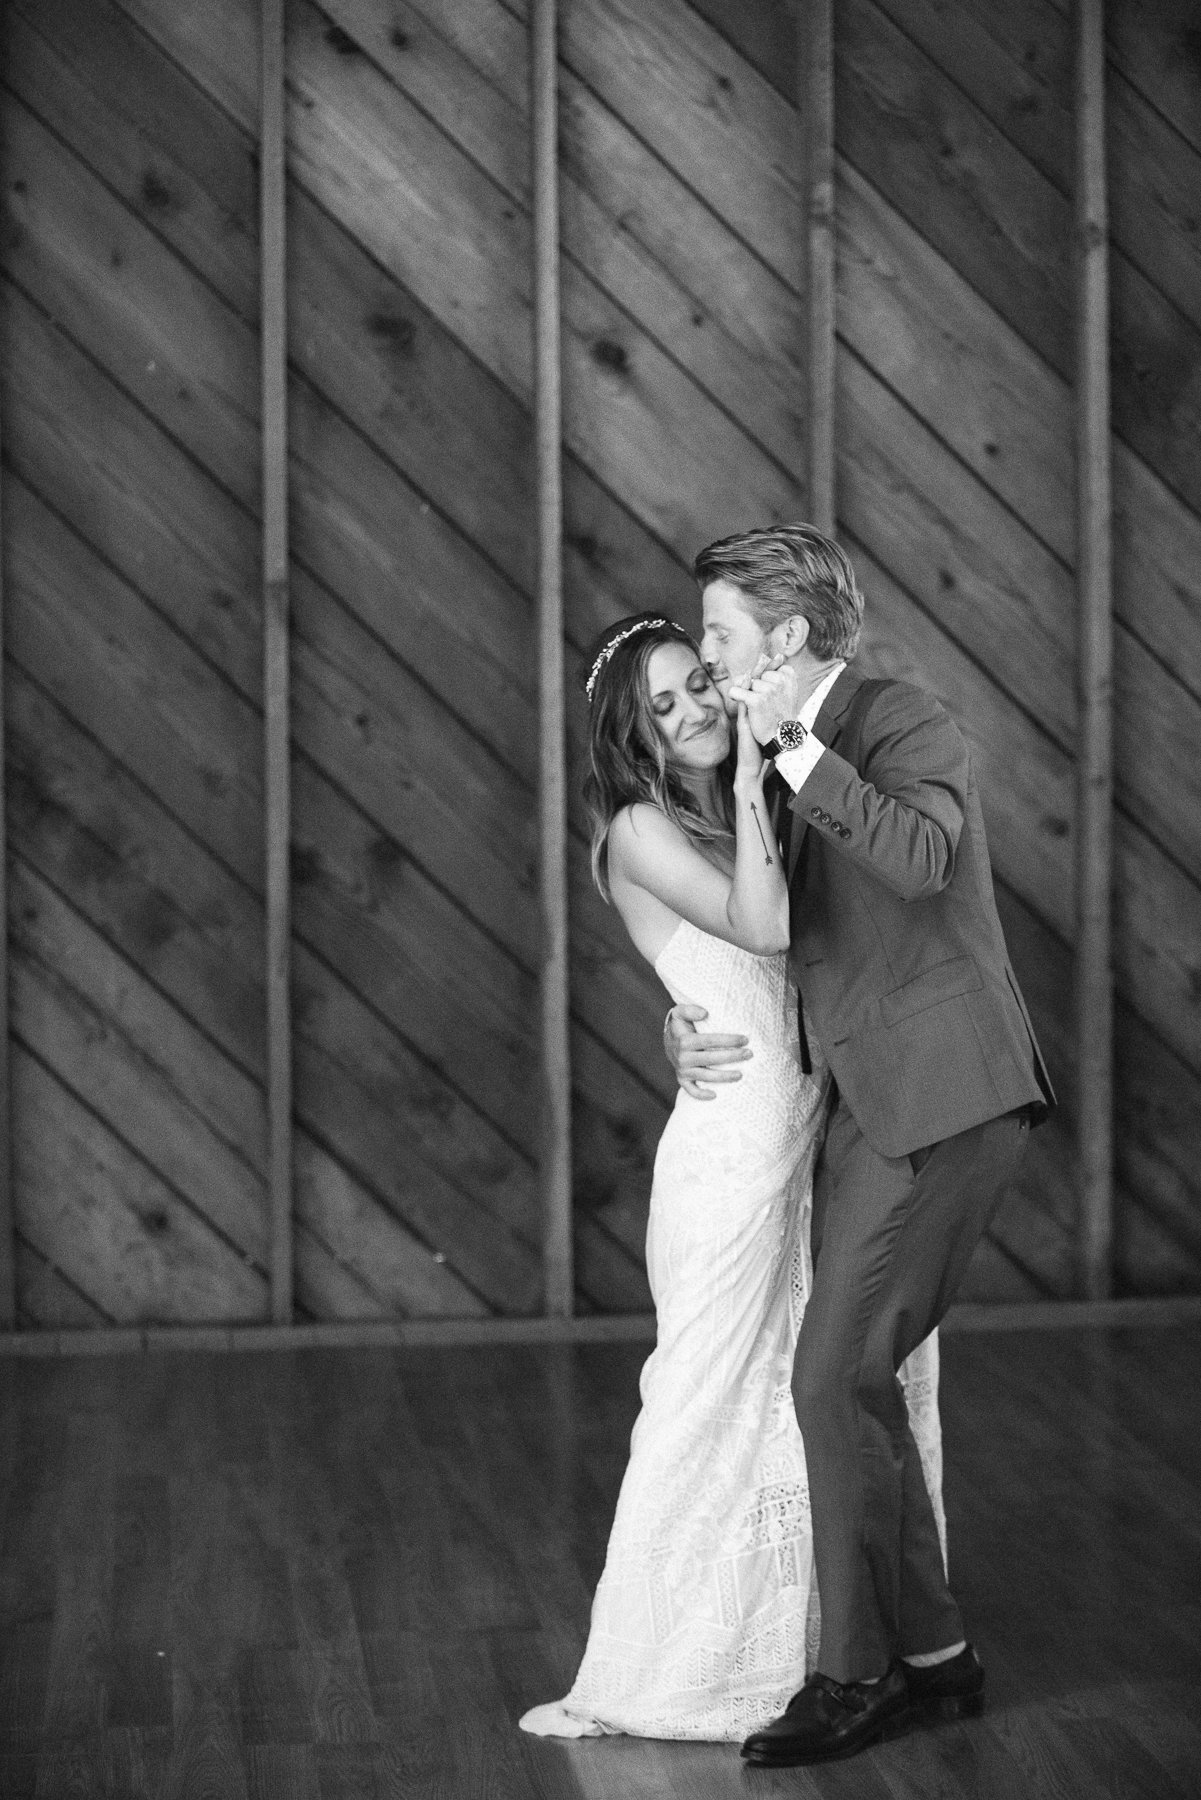 160-_MJ10090-crockett-farm-whidbey-island-wedding-michaela-joy-photography